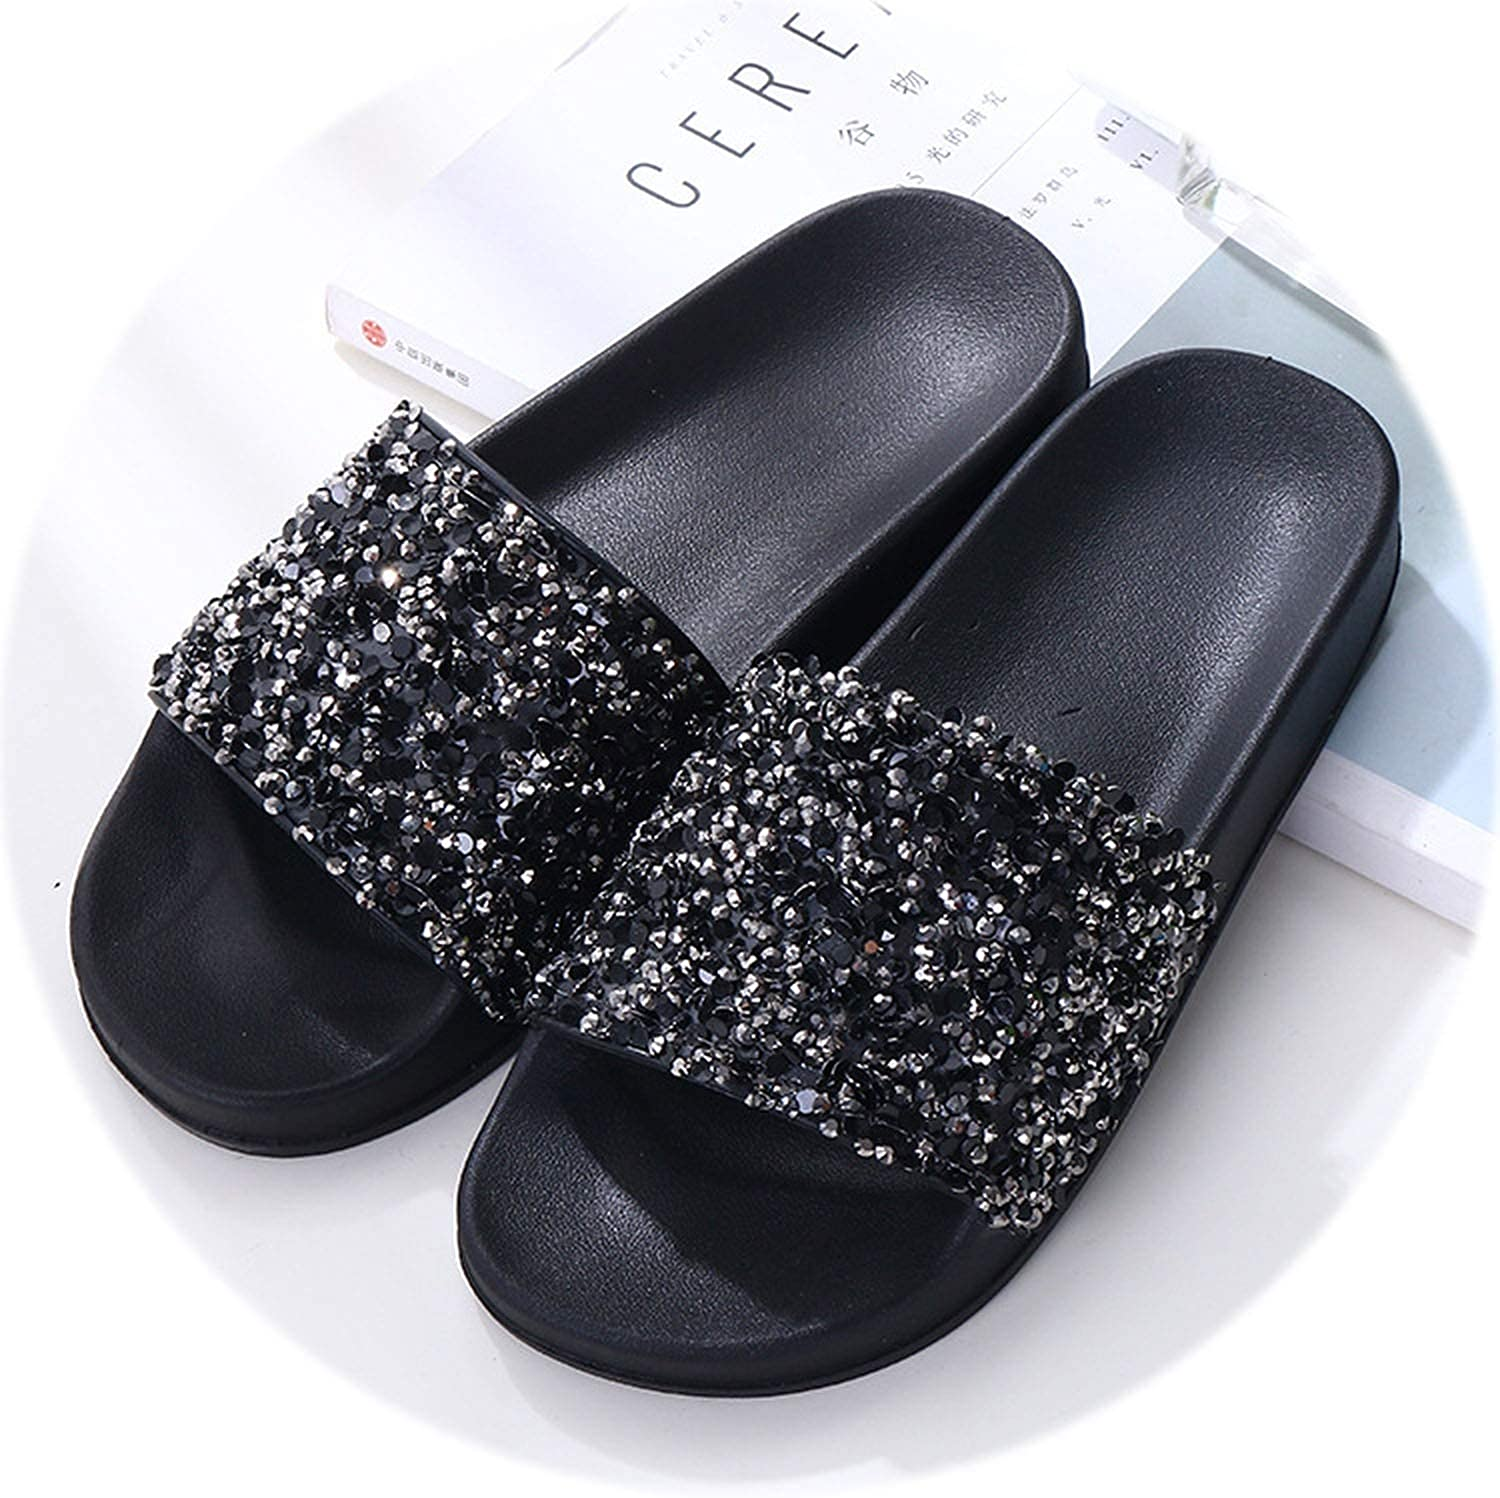 Rather be Women Slippers Flip Flops Women Crystal Bling Sequins Platform Beach Slides Sandals Casual shoes Slip On Slipper